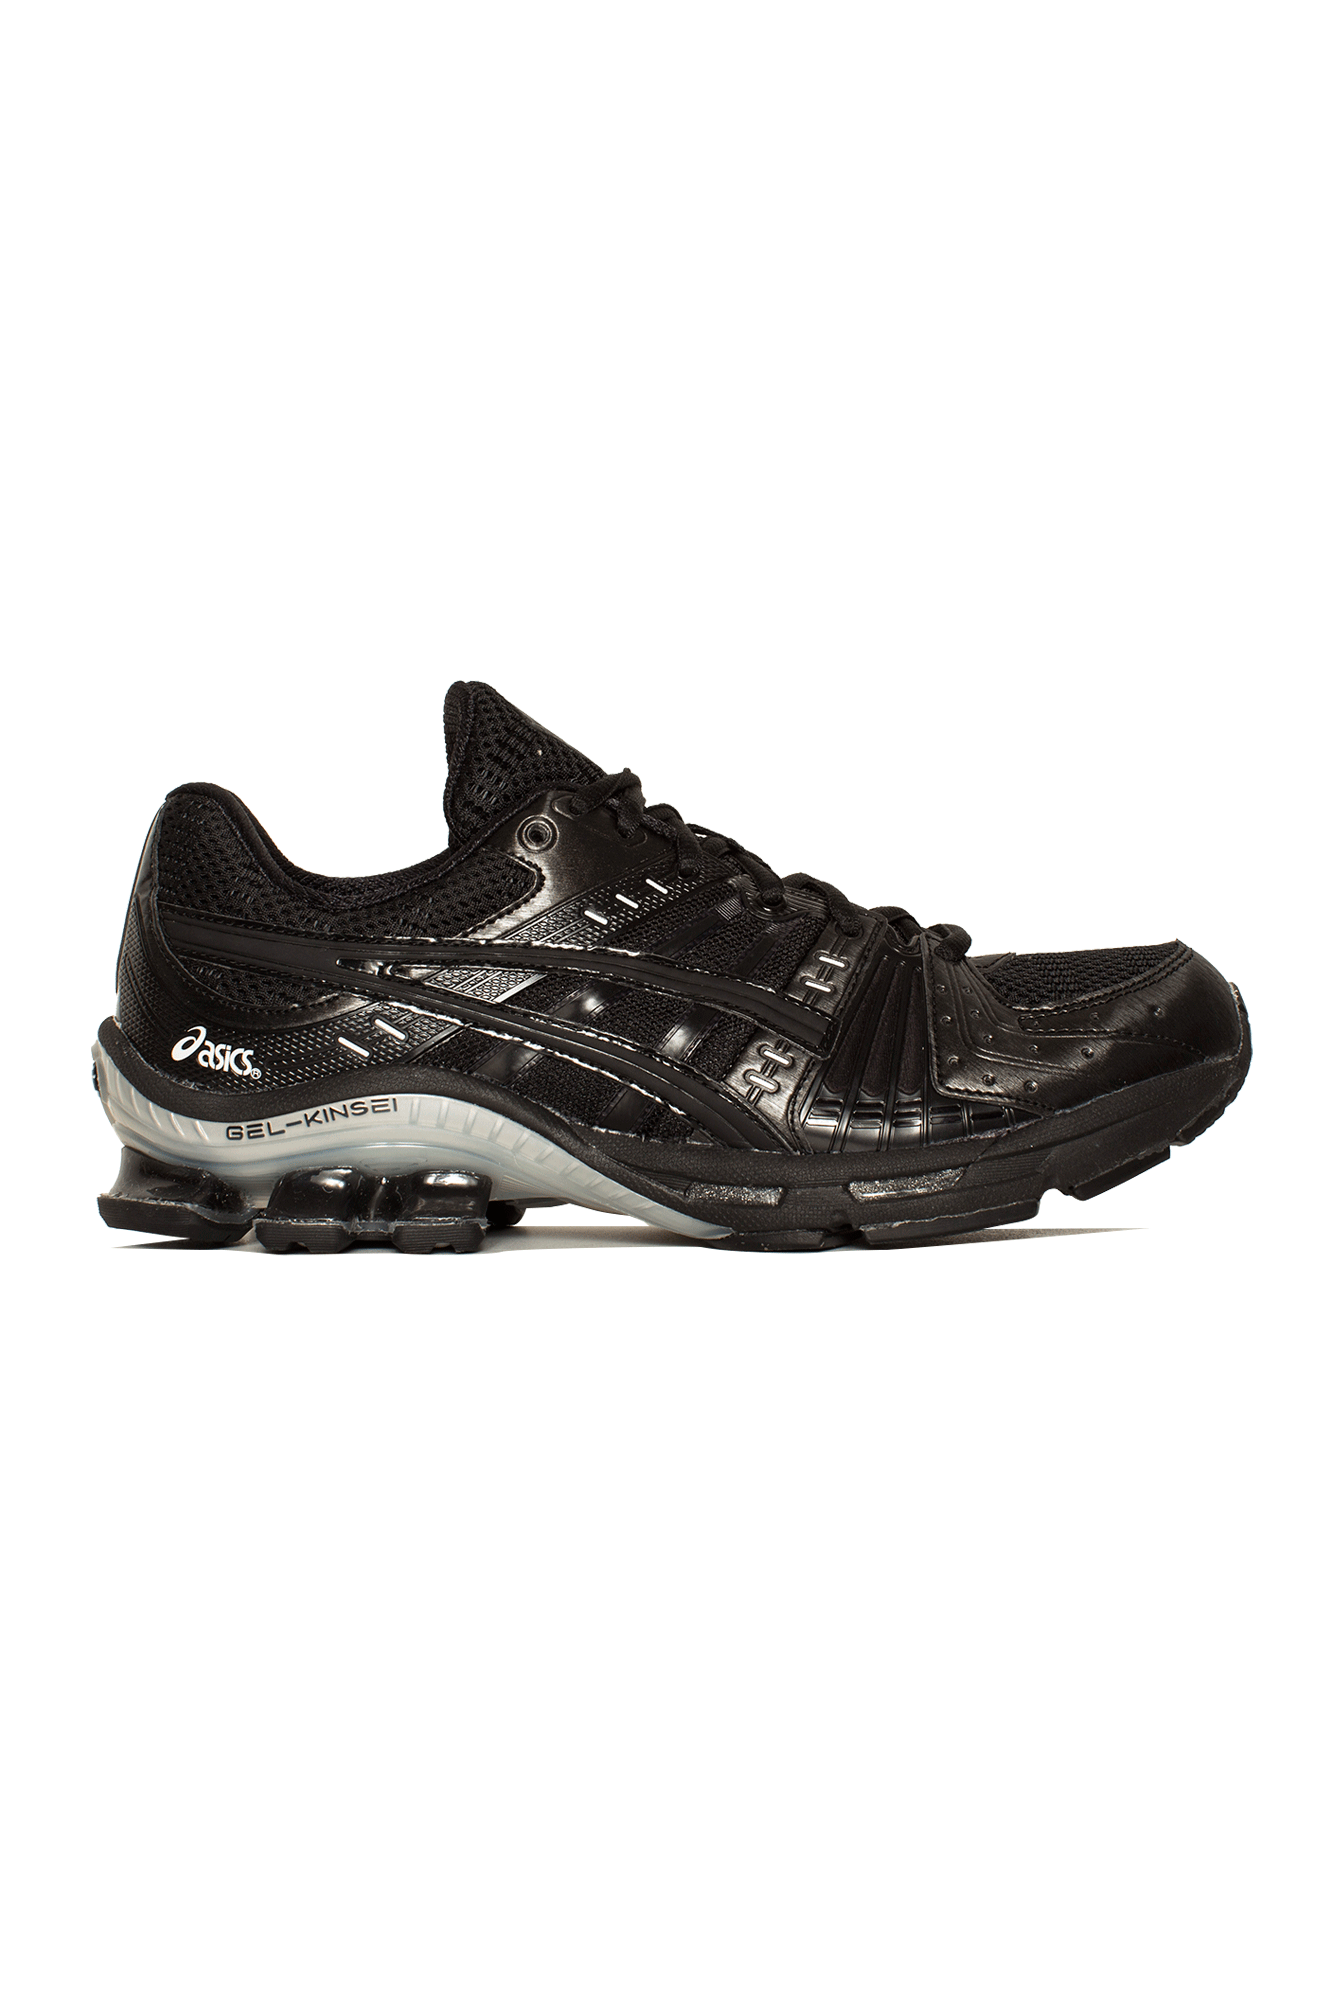 Asics Sneakers Gel- Kinsei Black 1021A117#000#001#7 - One Block Down